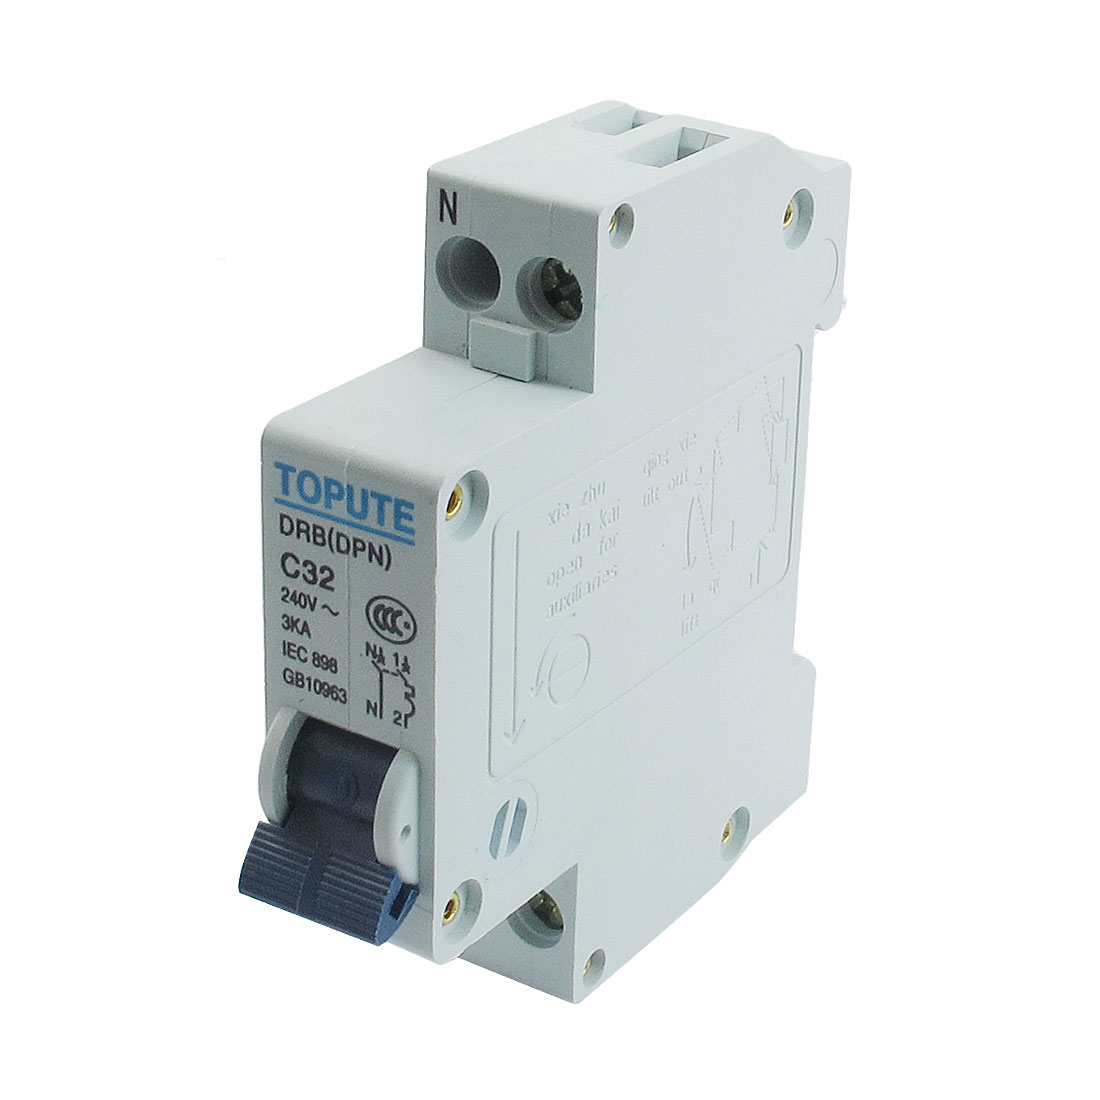 DIN Rail Mount 1P+N AC 240V 32A Overload Protection Circuit Breaker